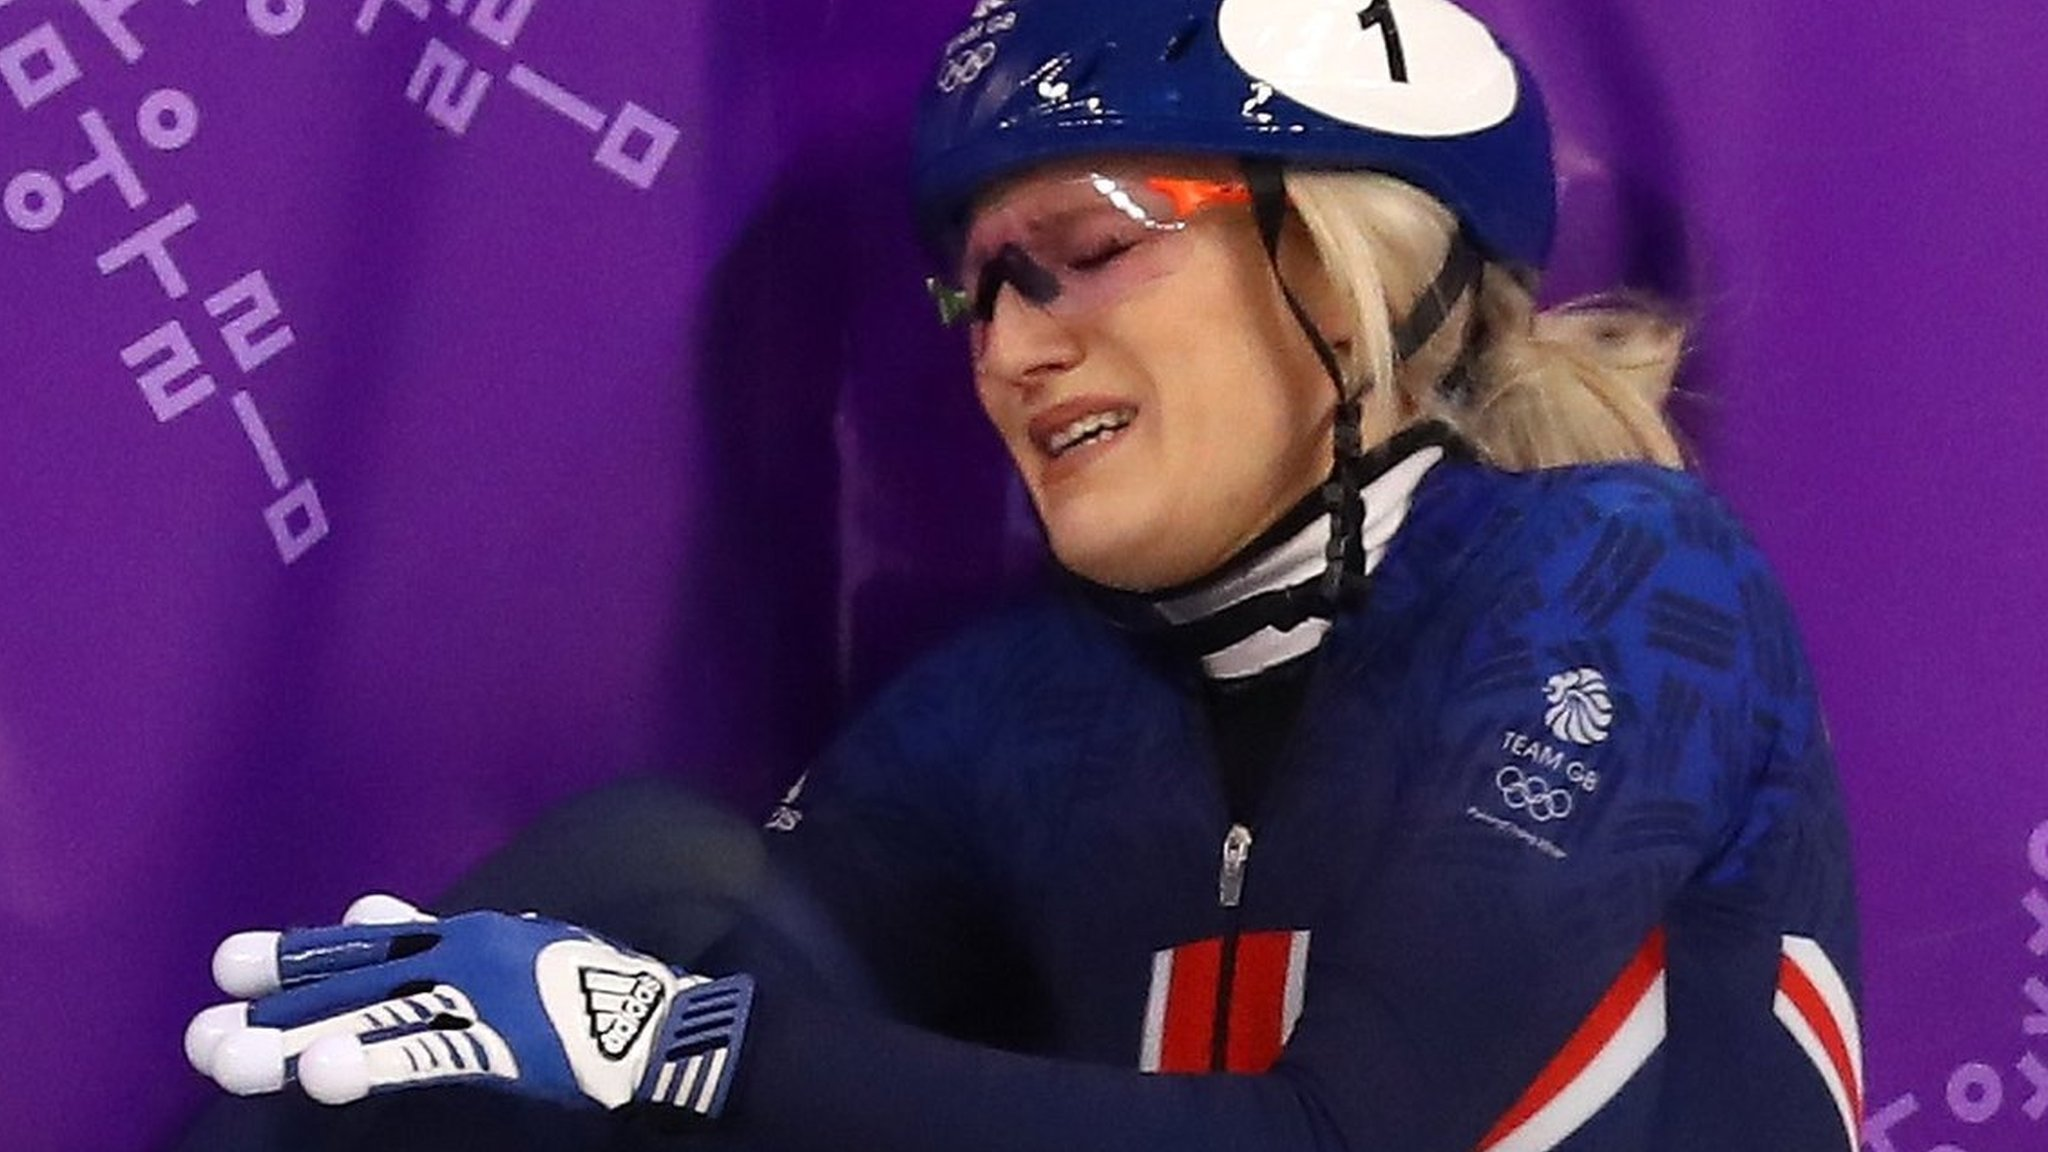 Winter Olympics: Why Elise Christie tugs at nation's heartstrings